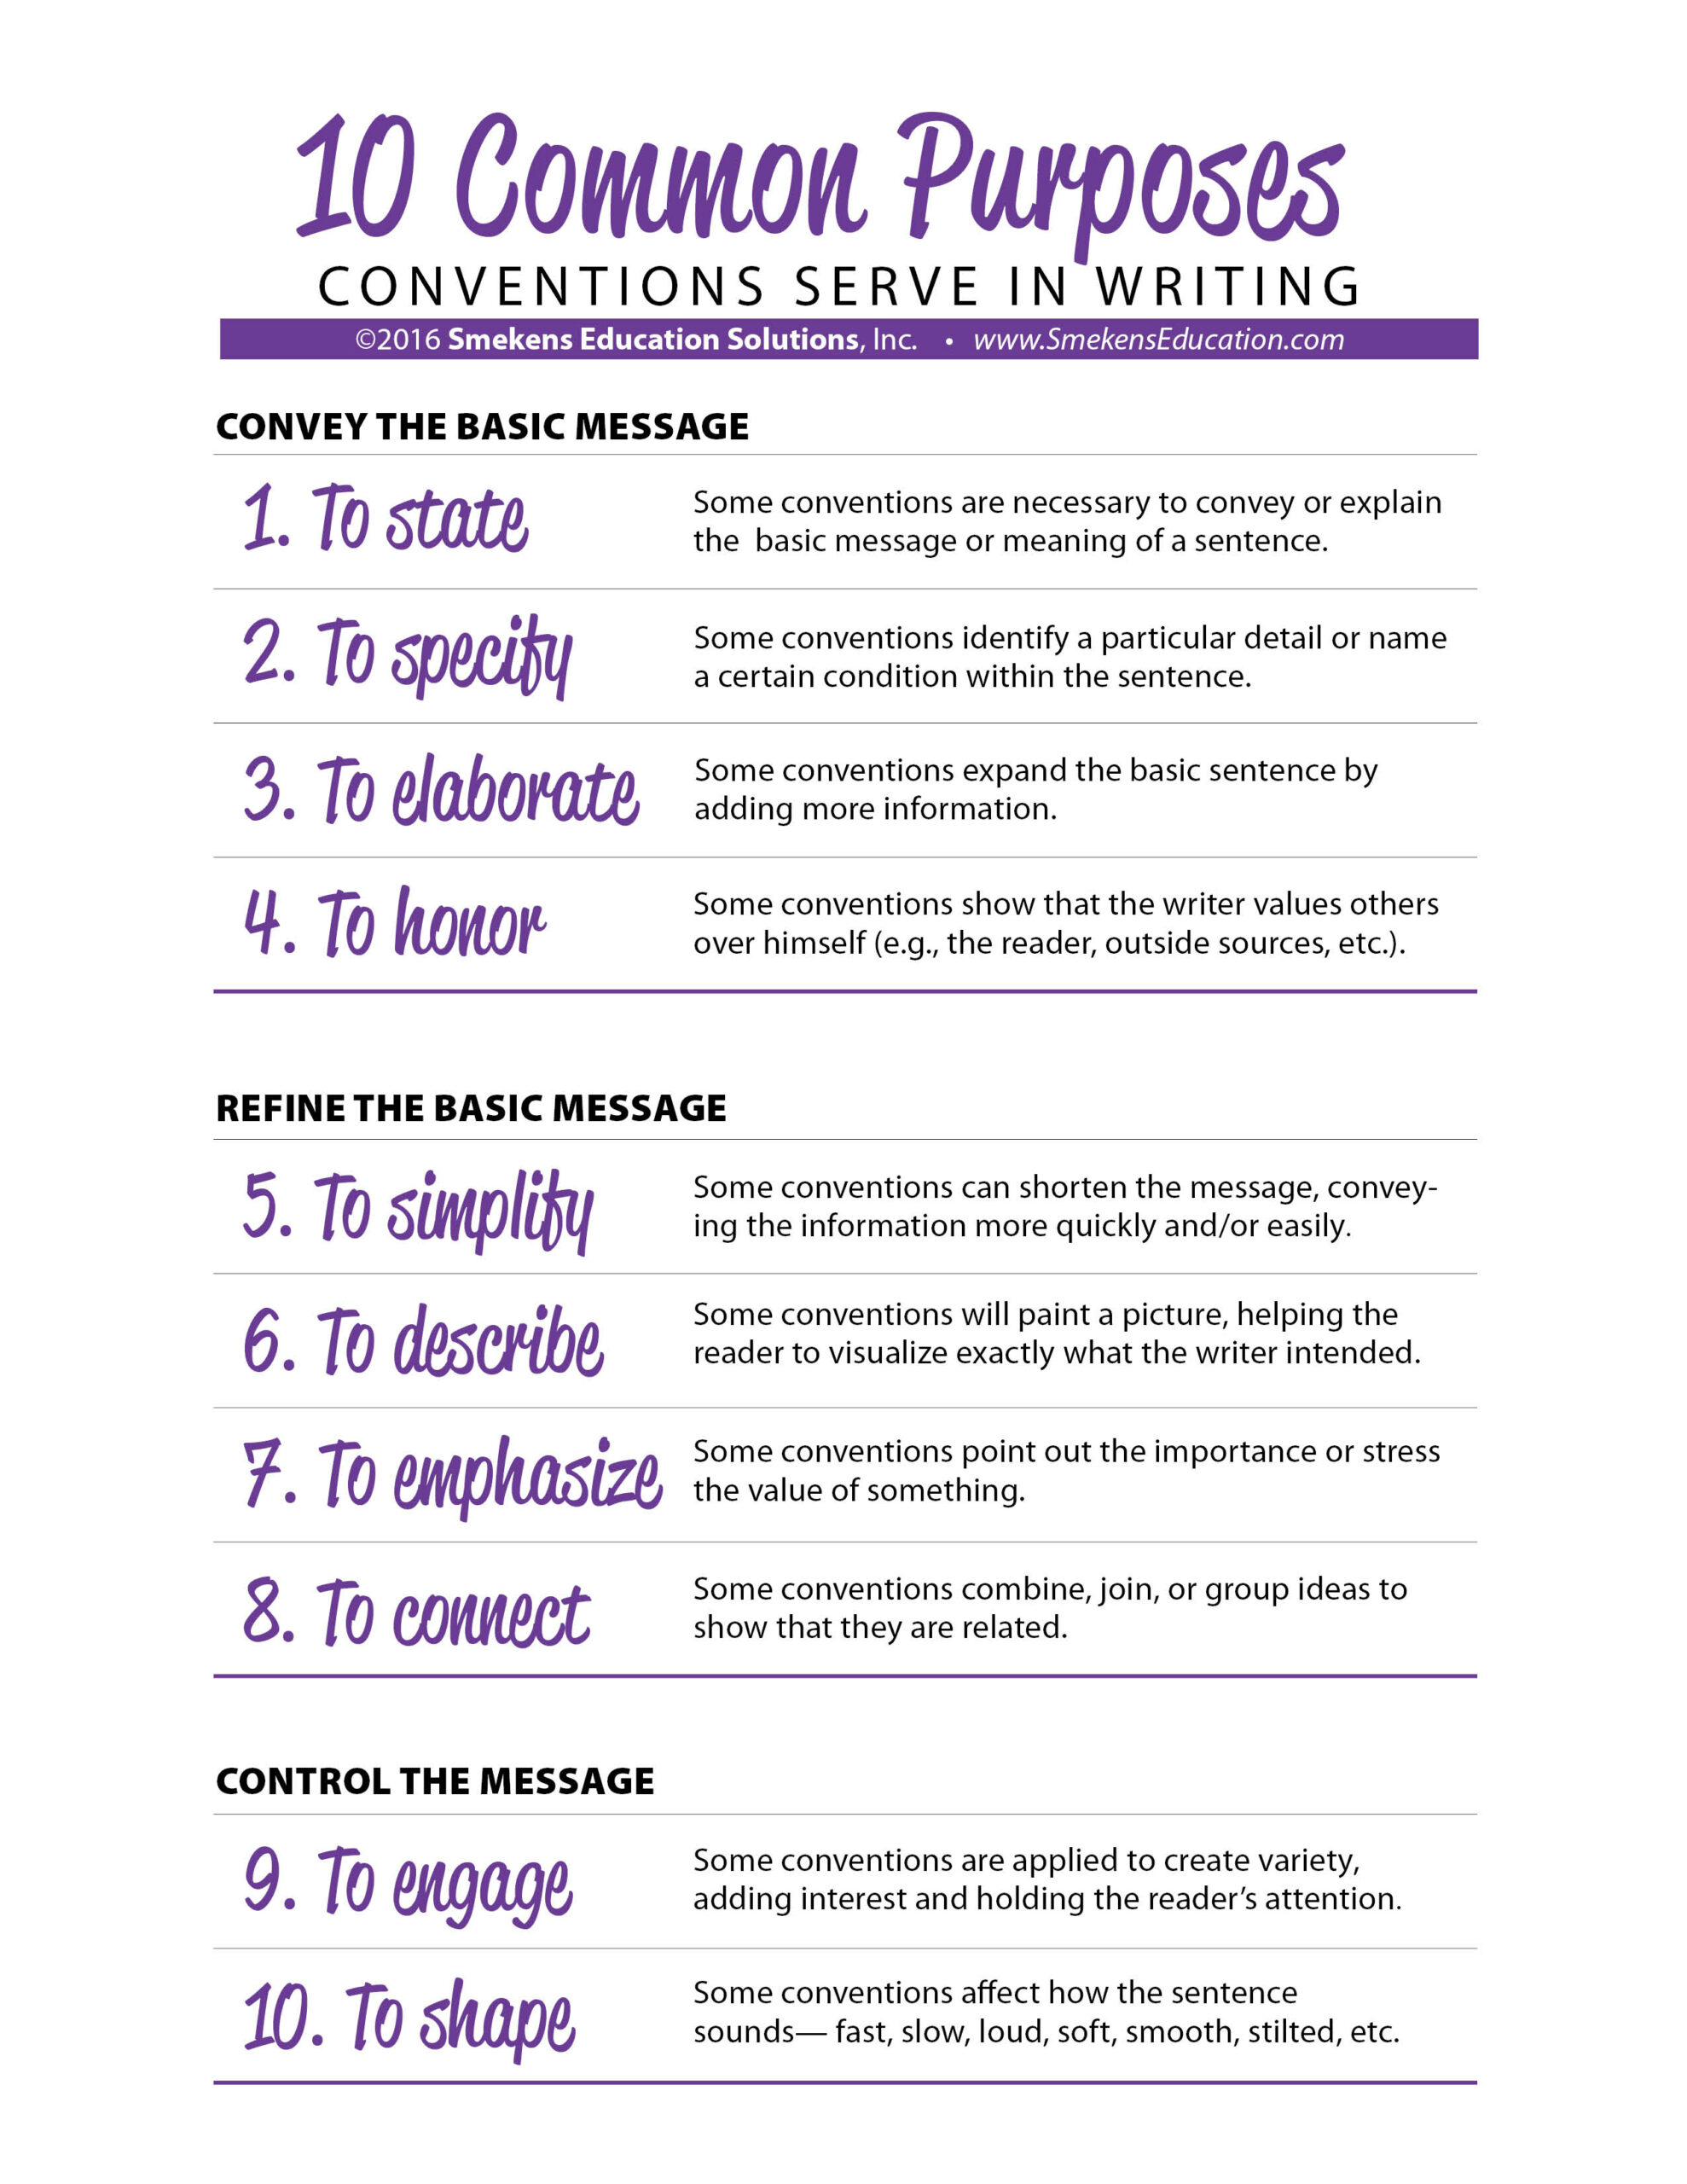 10 Convention Purposes - Downloadable Resource